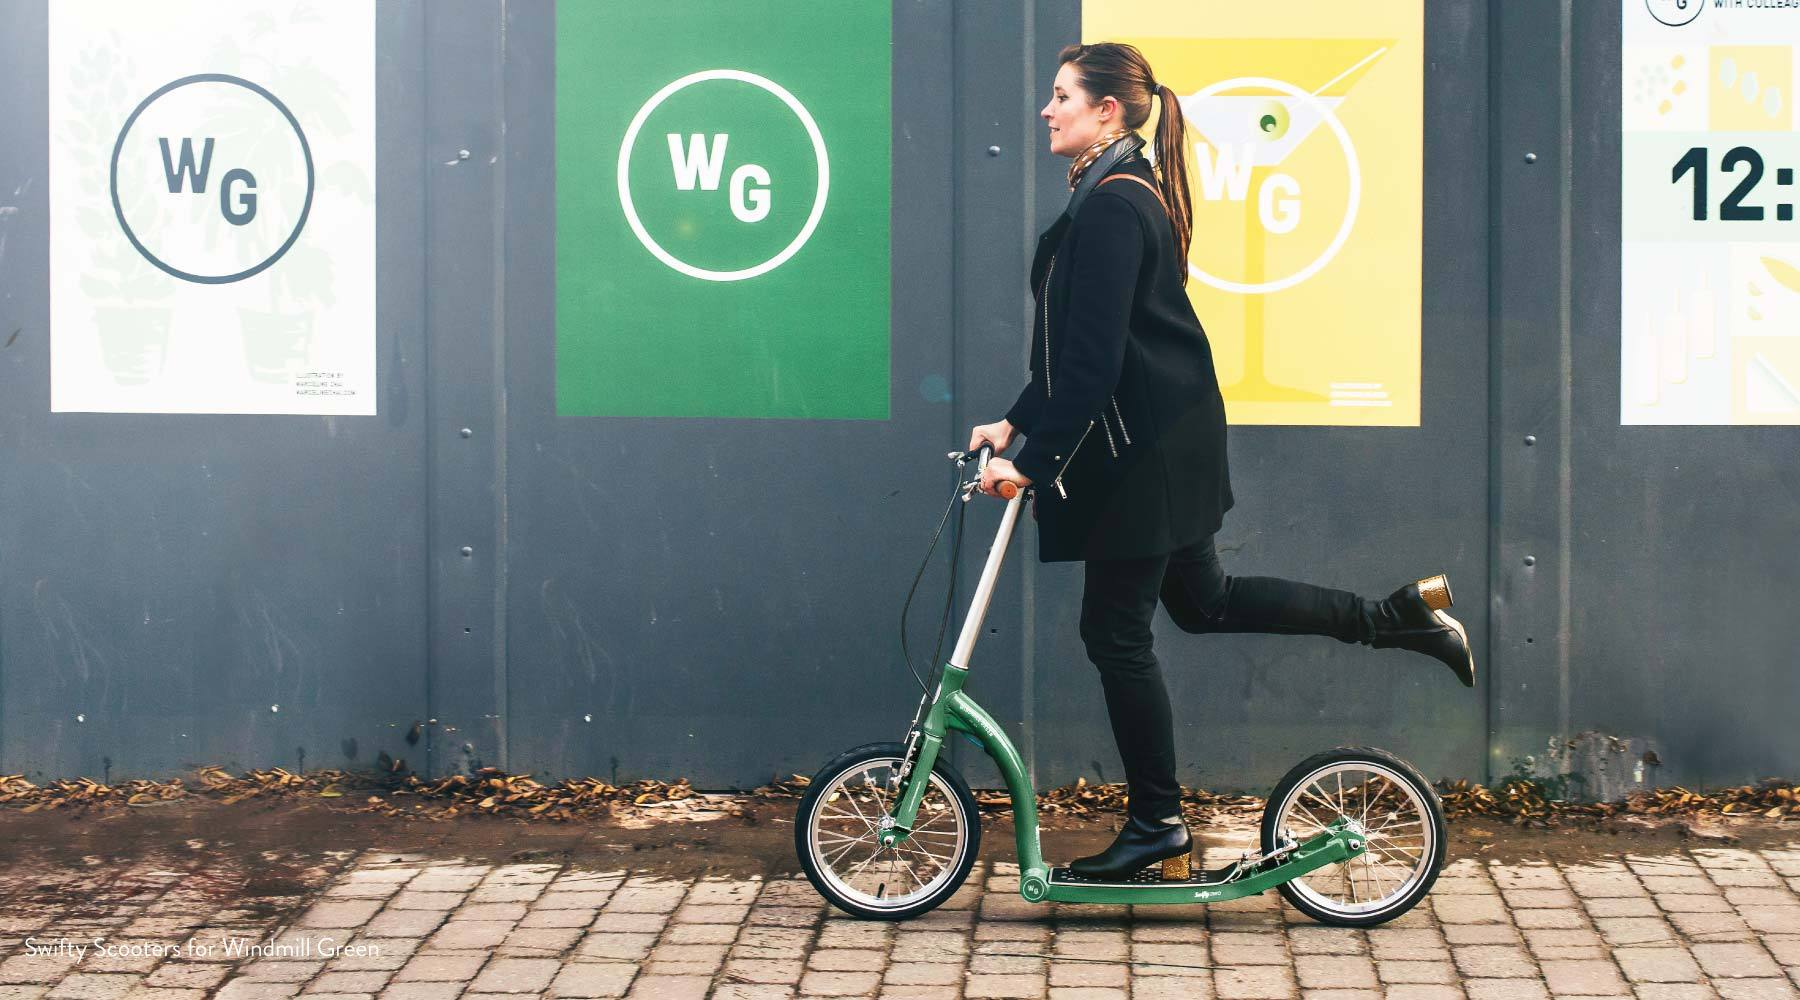 scooter fleet, micro mobility, adult scooter with big wheels, urban mobility fleet for businesses